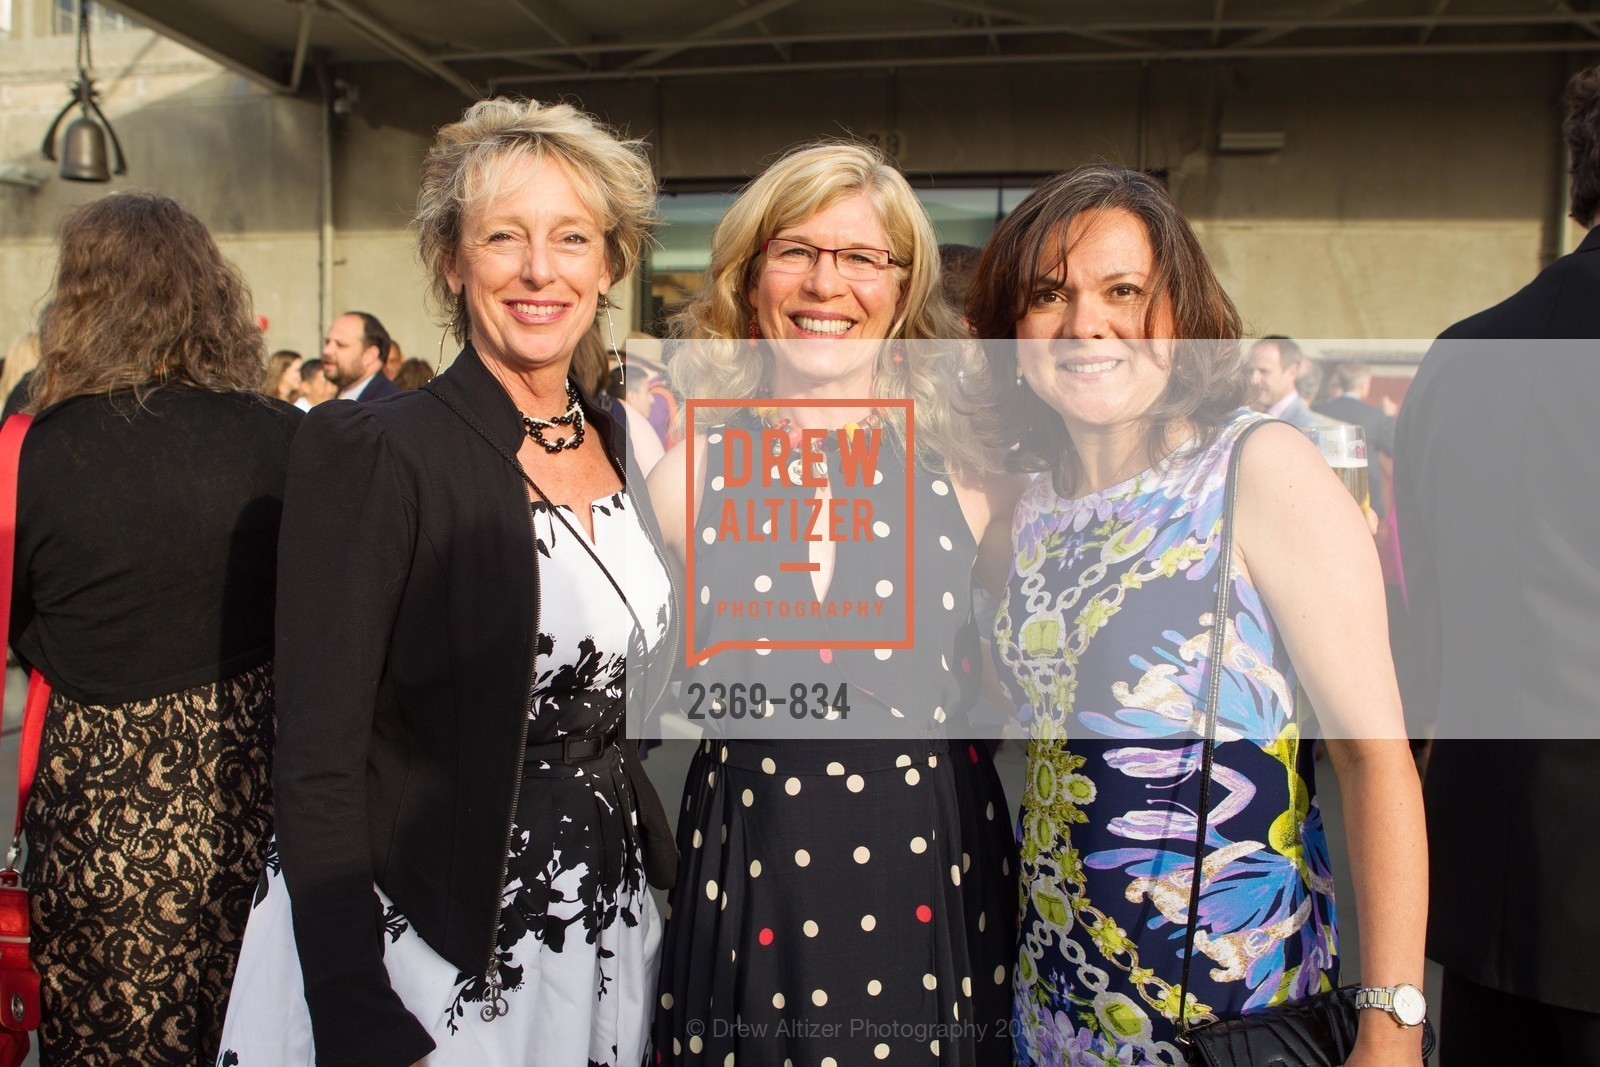 Lisa Conrad, Janet Moody McMurtry, Ann Dabovich, Exploratorium Spring Gala, Exploratorium, 140515, May 15th, 2014,Drew Altizer, Drew Altizer Photography, full-service agency, private events, San Francisco photographer, photographer california